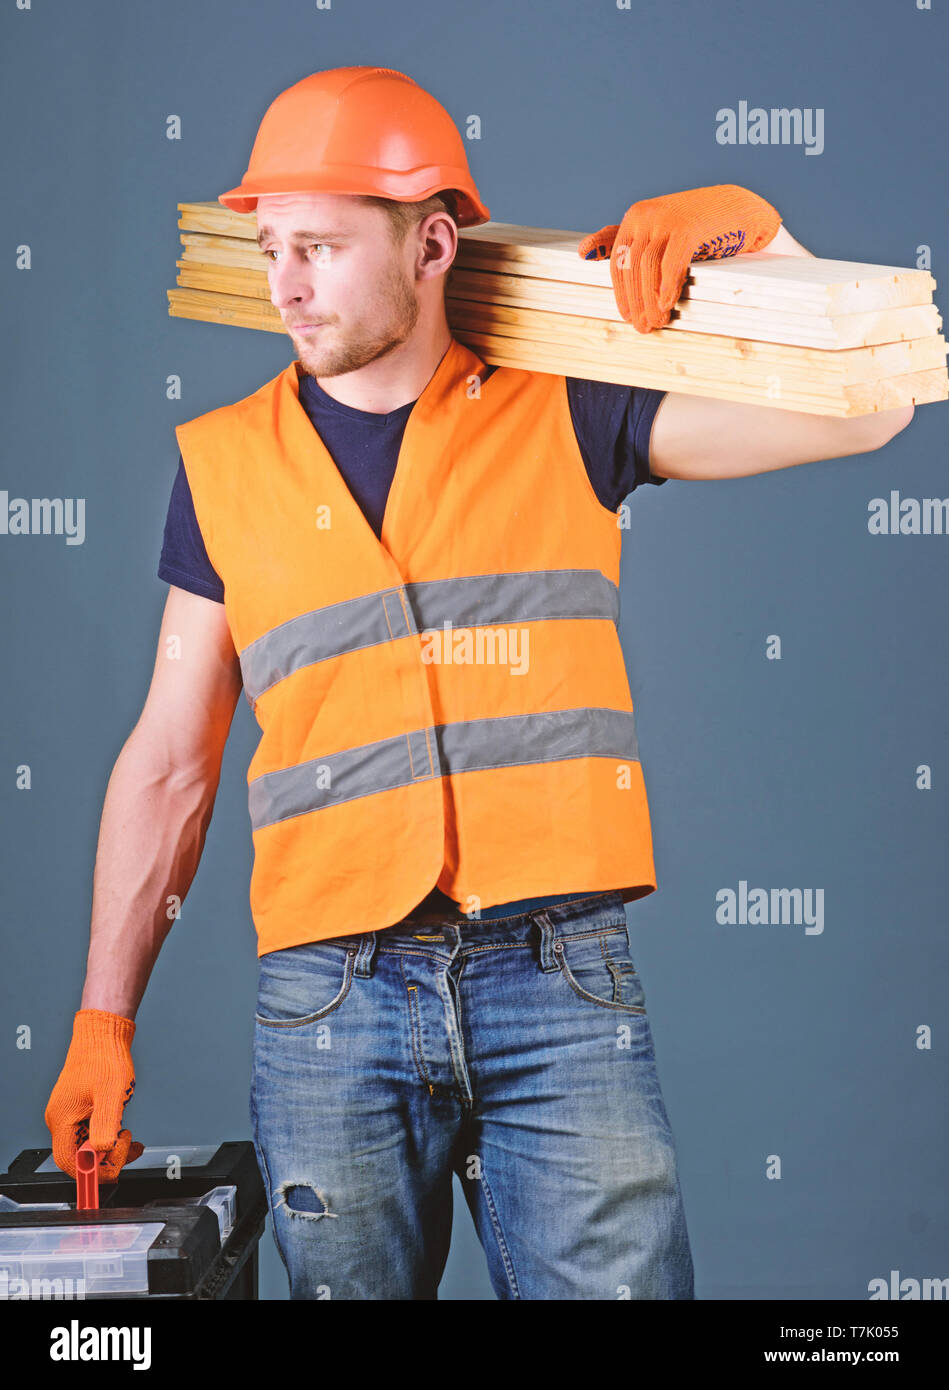 Woodcraft concept. Carpenter, woodworker, labourer, builder on busy face carries wooden beams on shoulder. Man, handyman in helmet, hard hat holds toolbox and wooden beams, grey background. Stock Photo